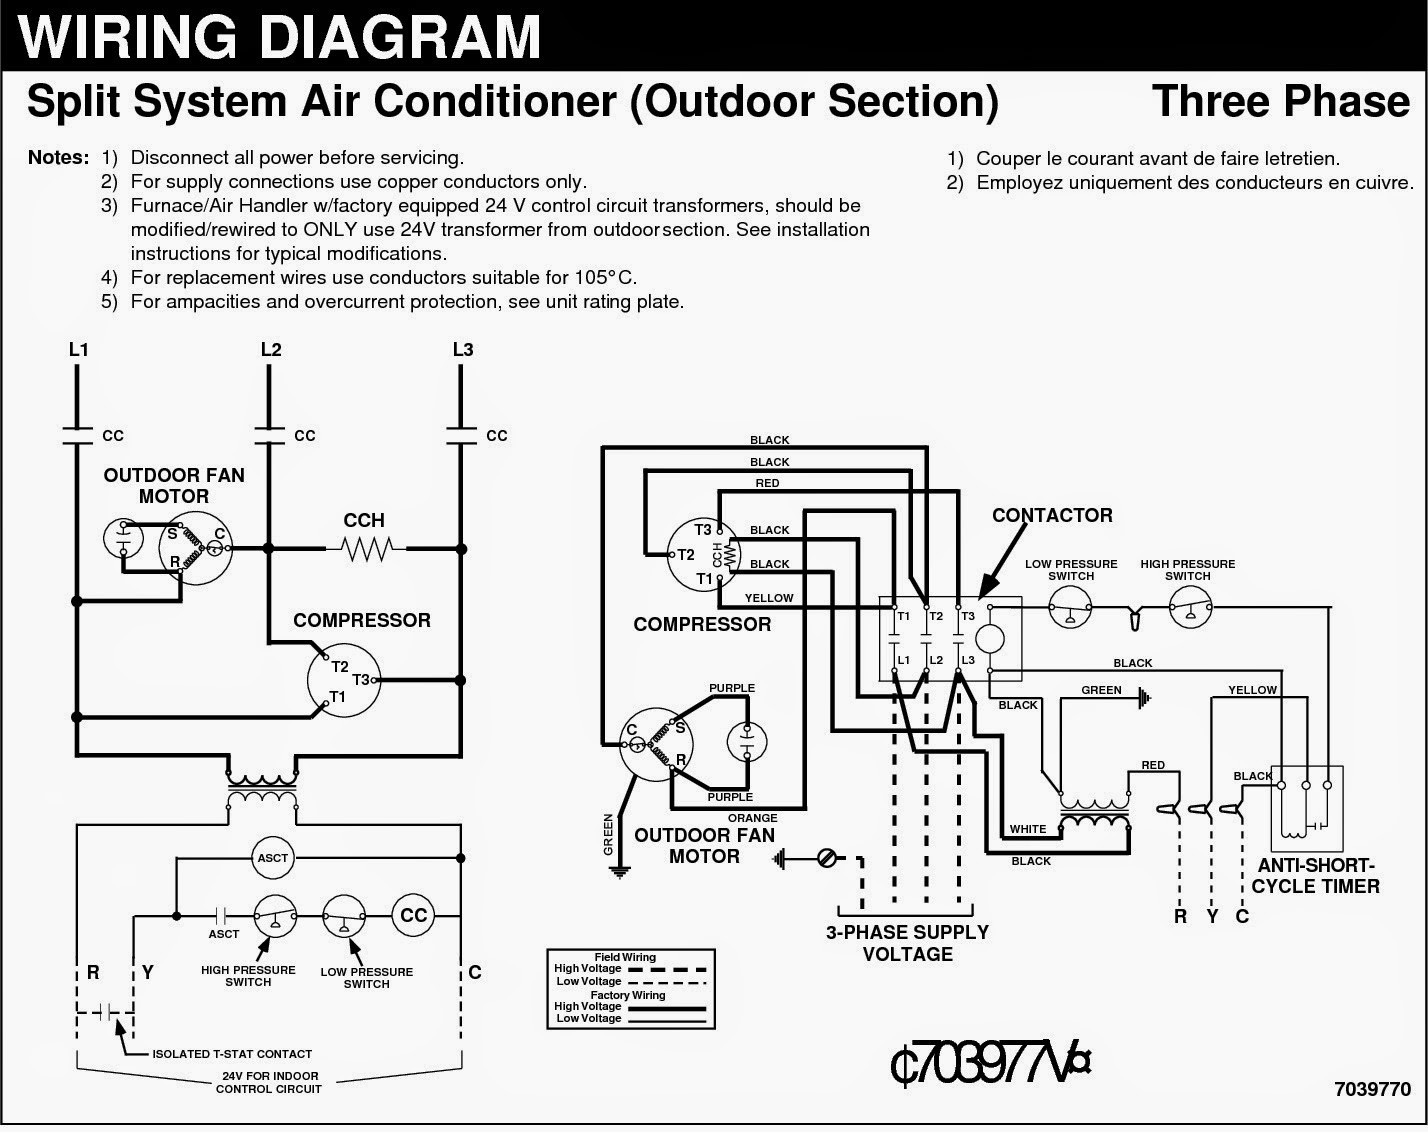 house ac wiring diagram wiring diagram explained house ac wiring diagram home ac wiring diagram [ 1428 x 1132 Pixel ]